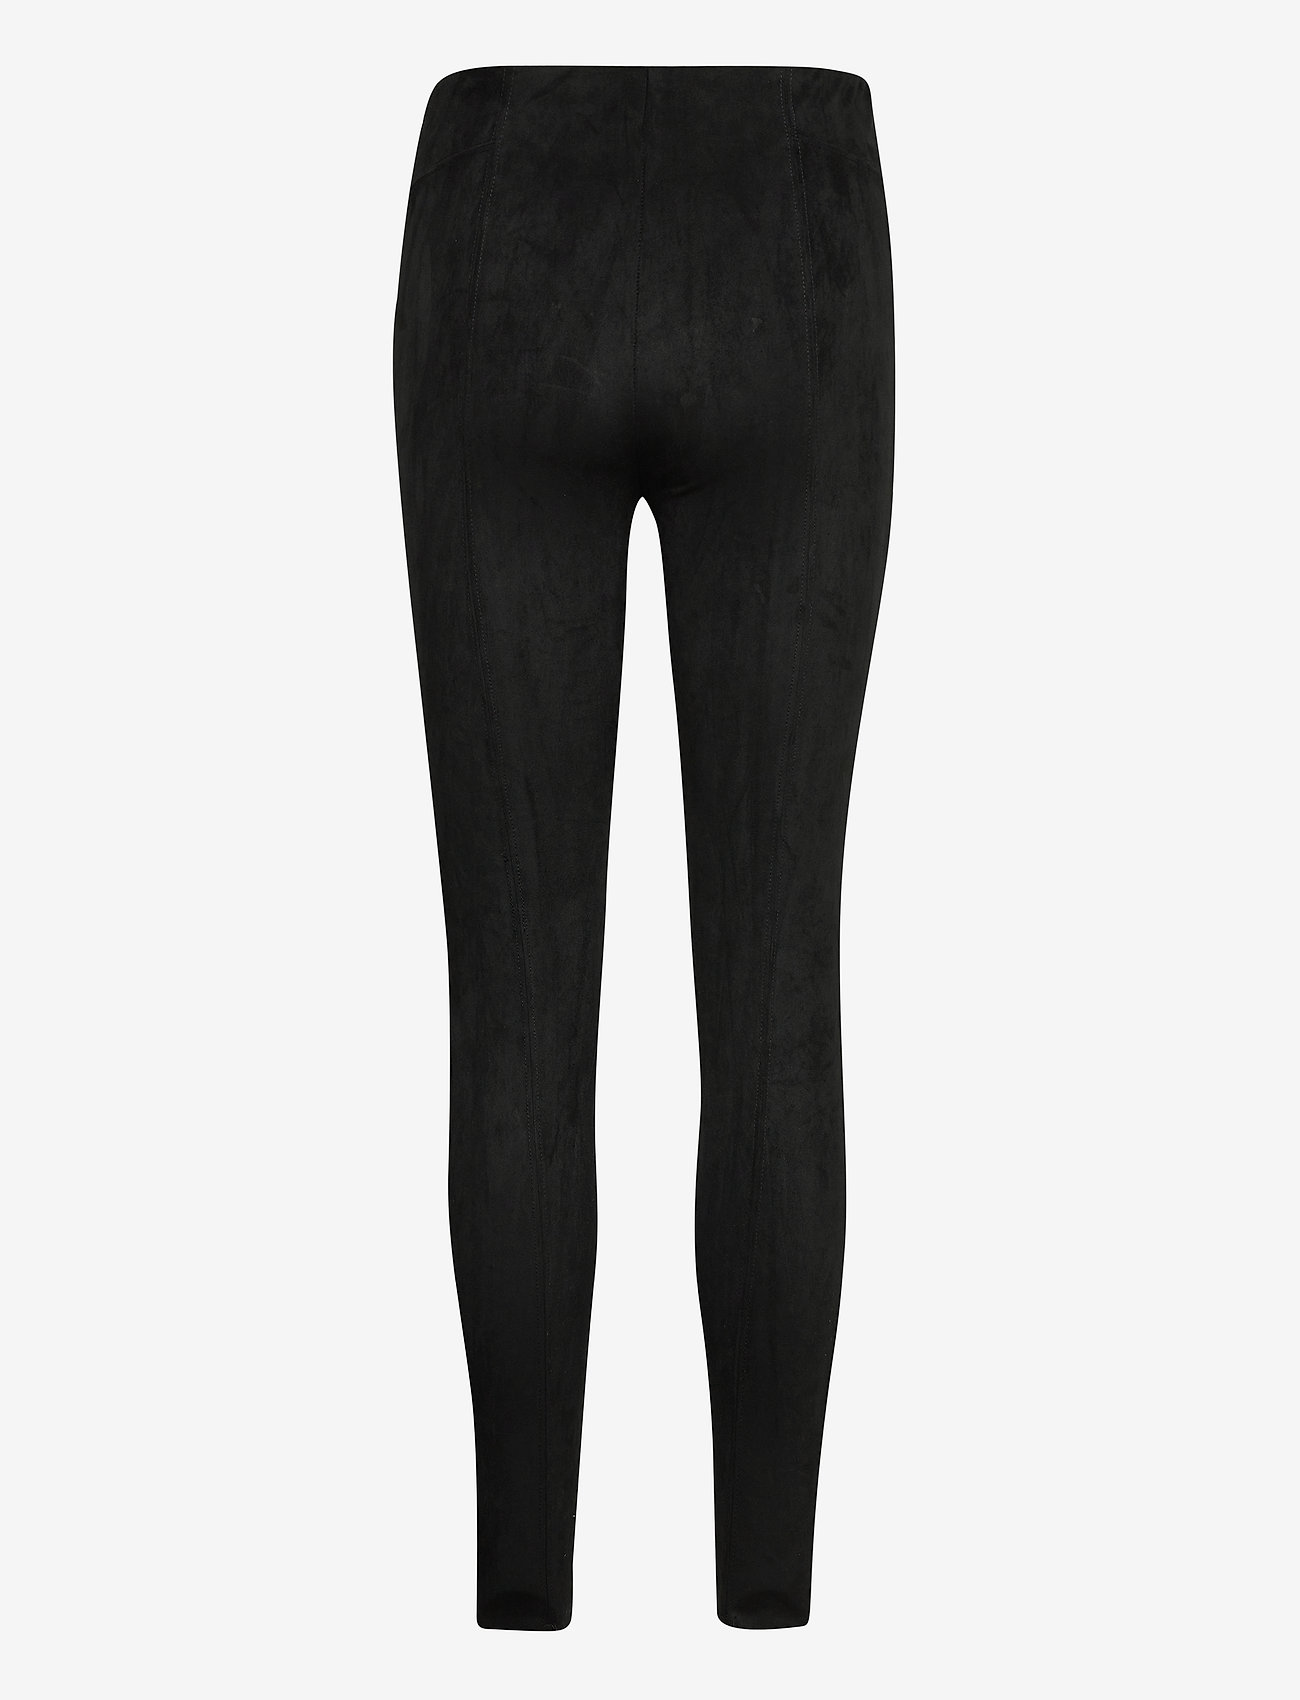 b.young - BYREGIZA LEGGINGS - - leggings - black - 1